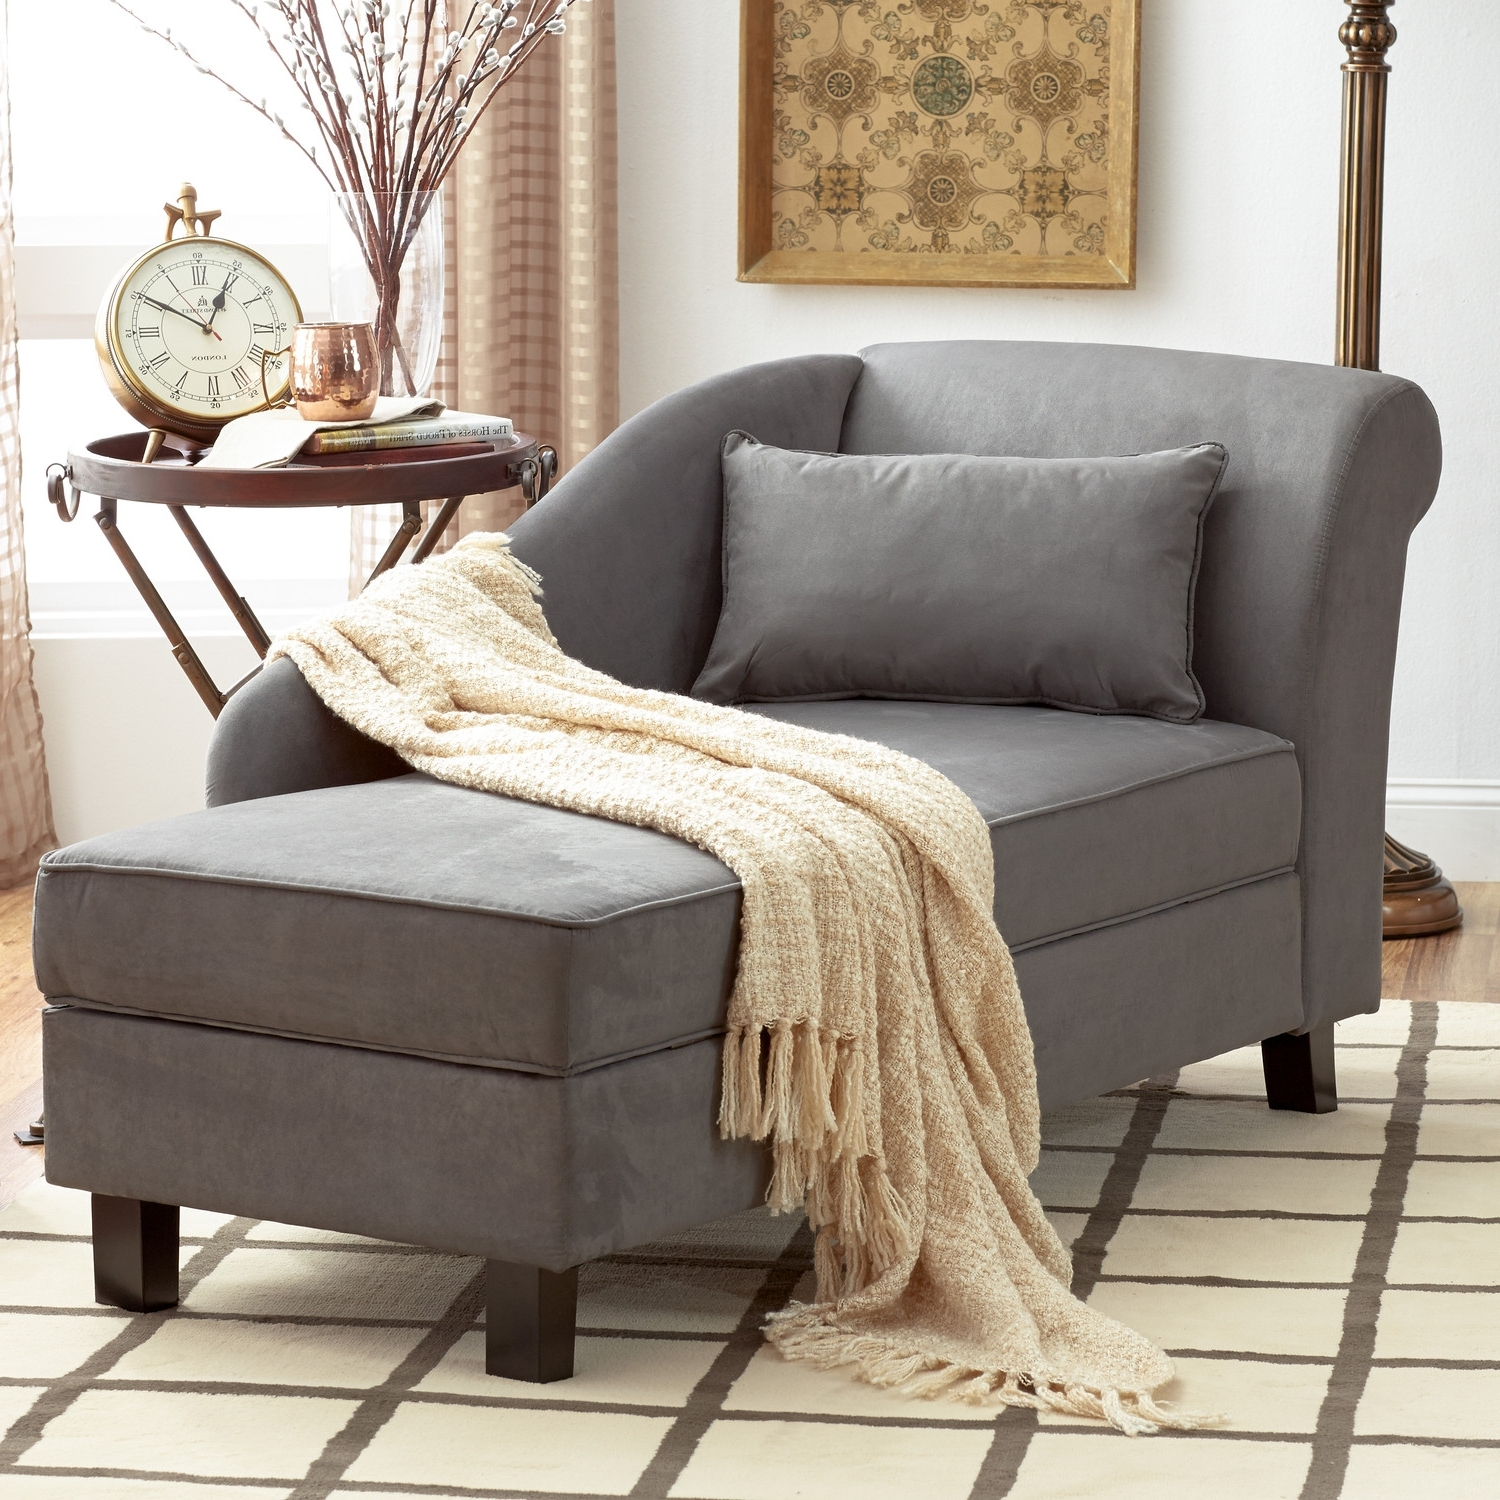 Large Chaise Lounges Throughout Favorite Inspirational Chaise Lounge Chairs For Bedroom (39 Photos (View 8 of 15)